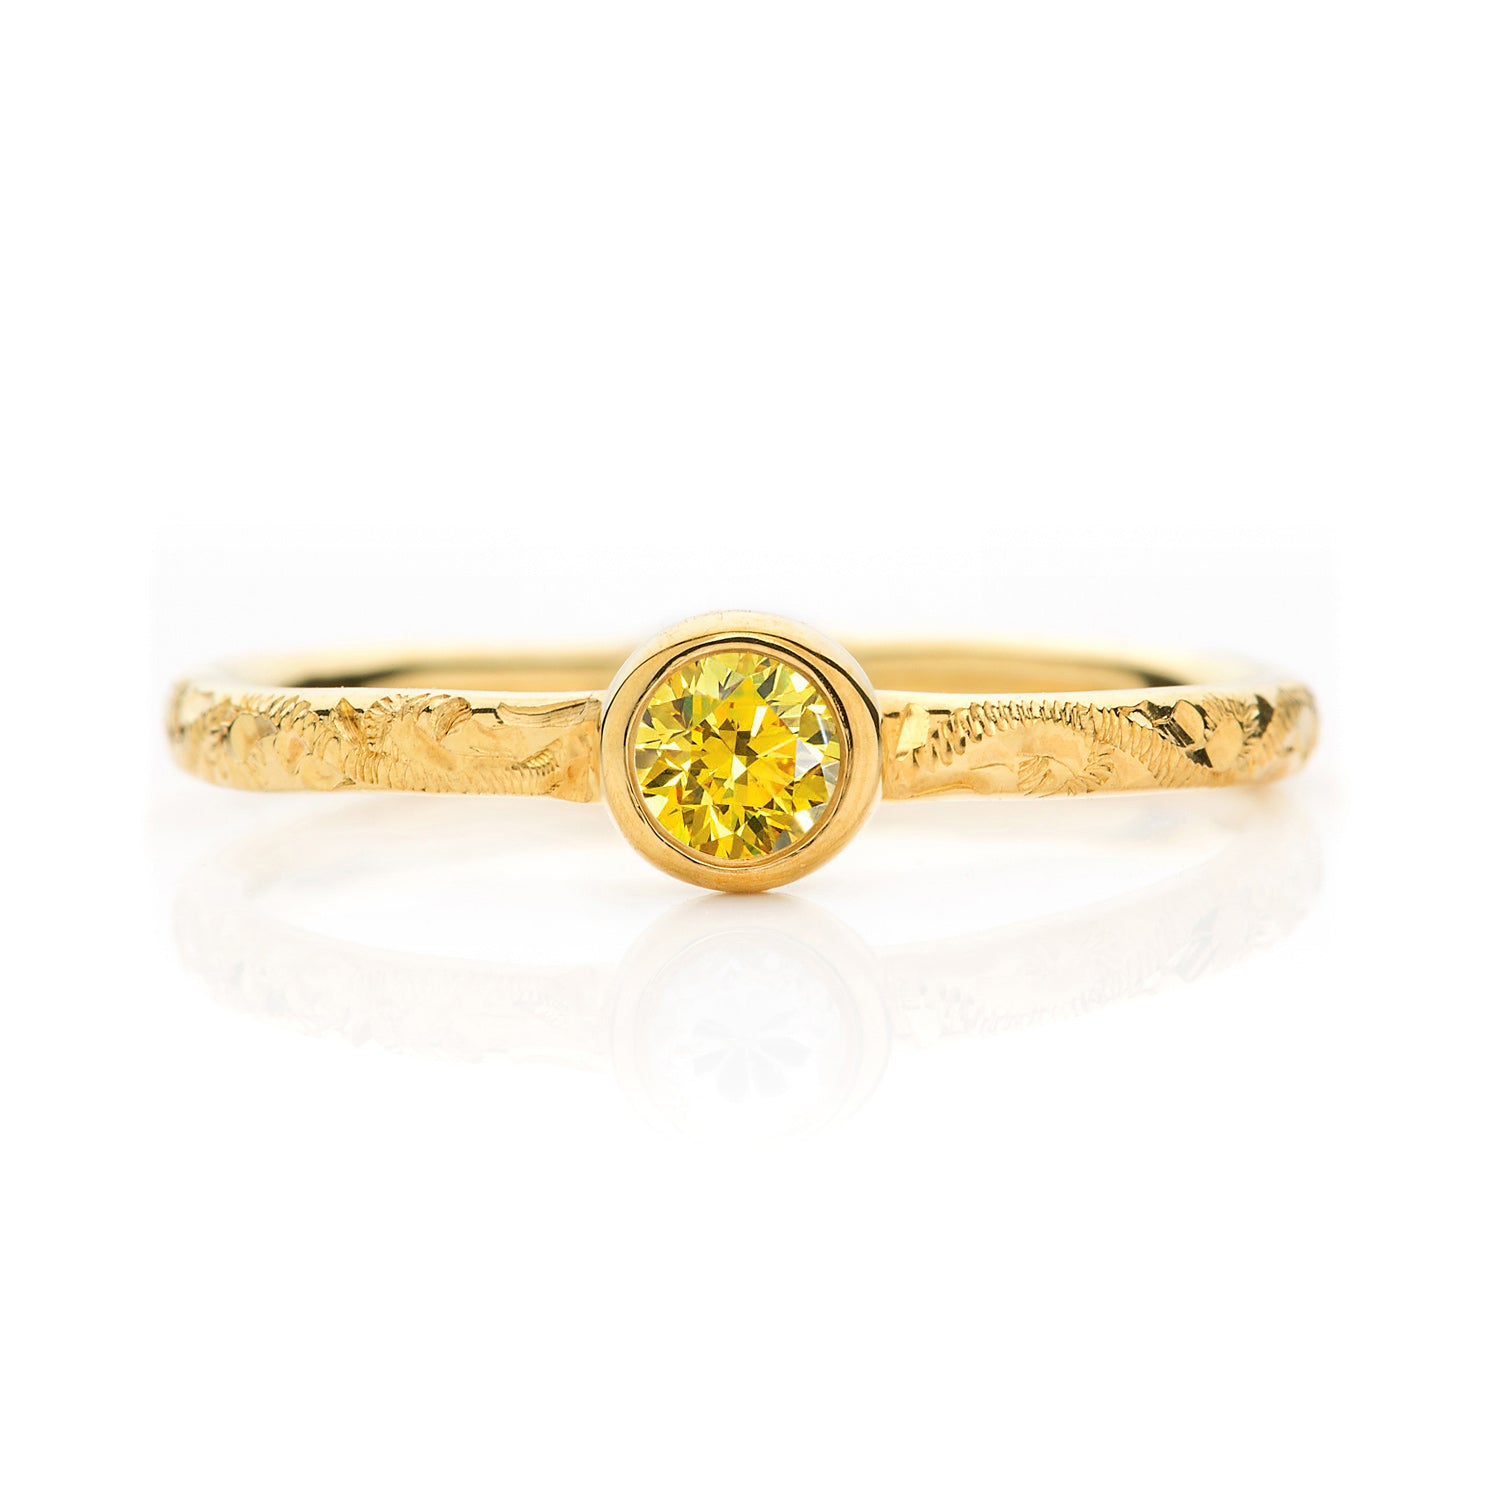 Hera Lab-grown Diamond Engagement Ring, 18ct Ethical Gold